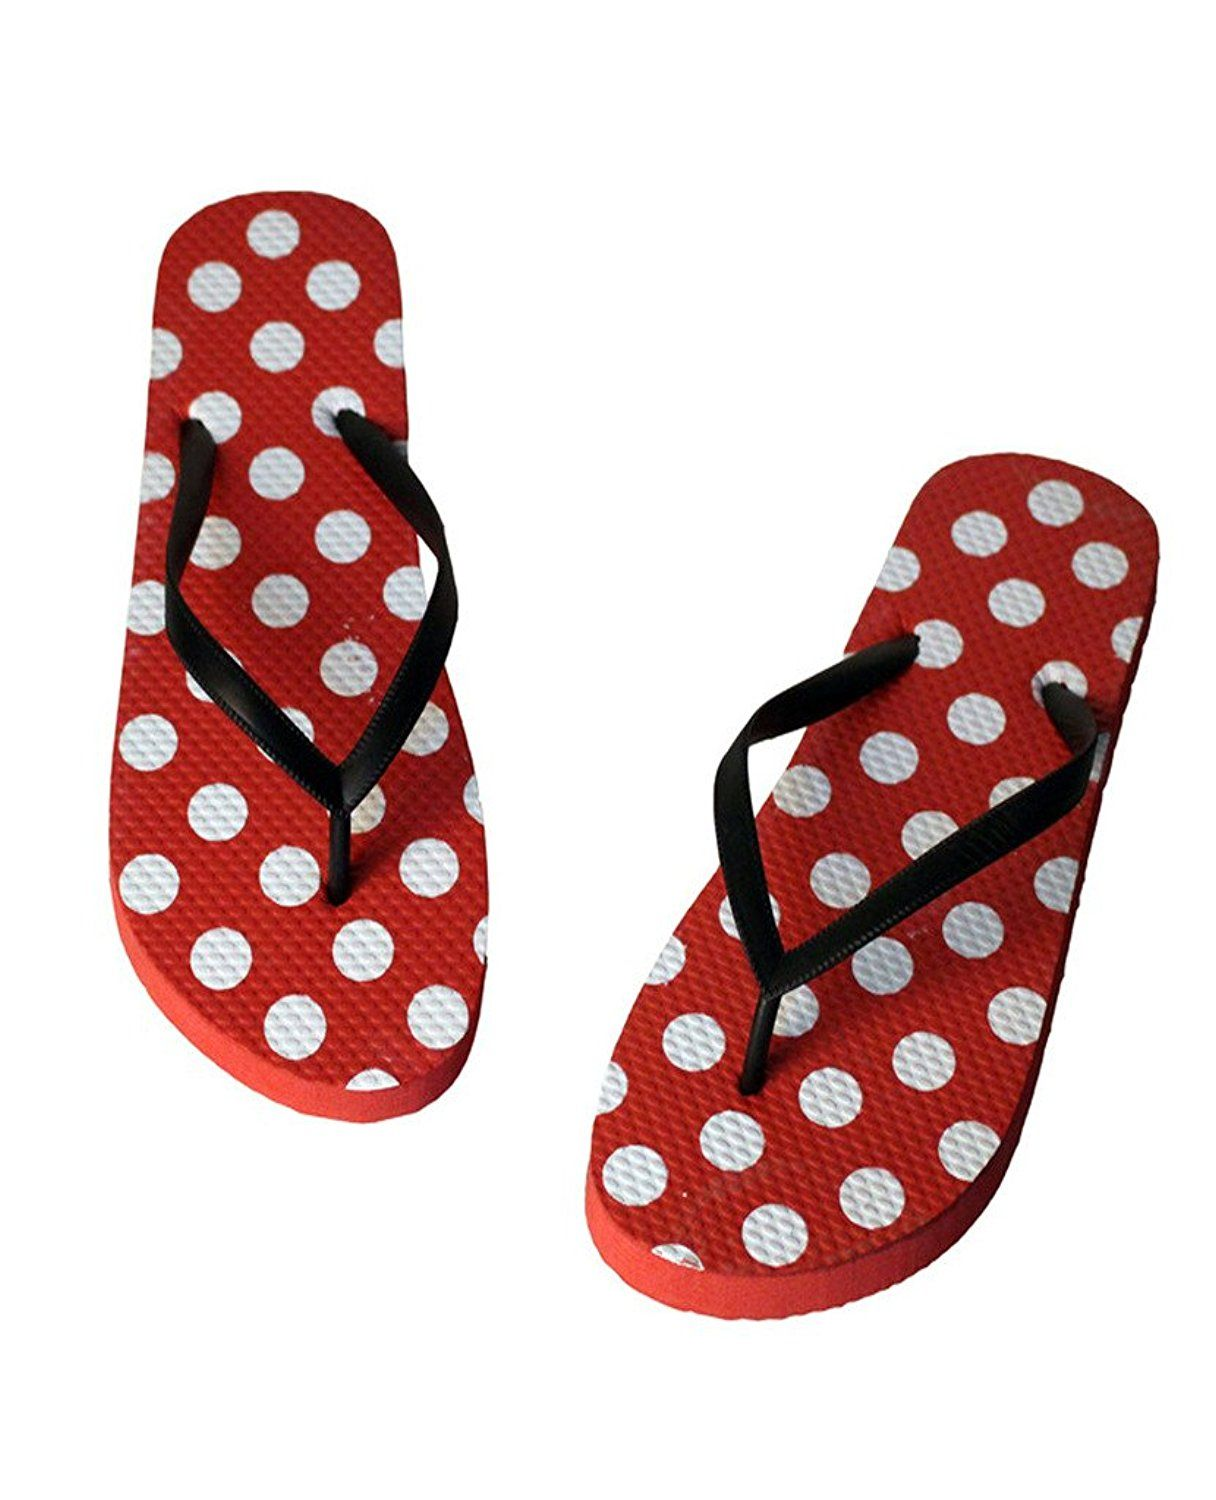 c3a58ededf94 Diorot Women s Casual Summer Beach Cute Dot Flip Flops Sandal Slippers     Insider s special review you can t miss. Read more at Sandals board